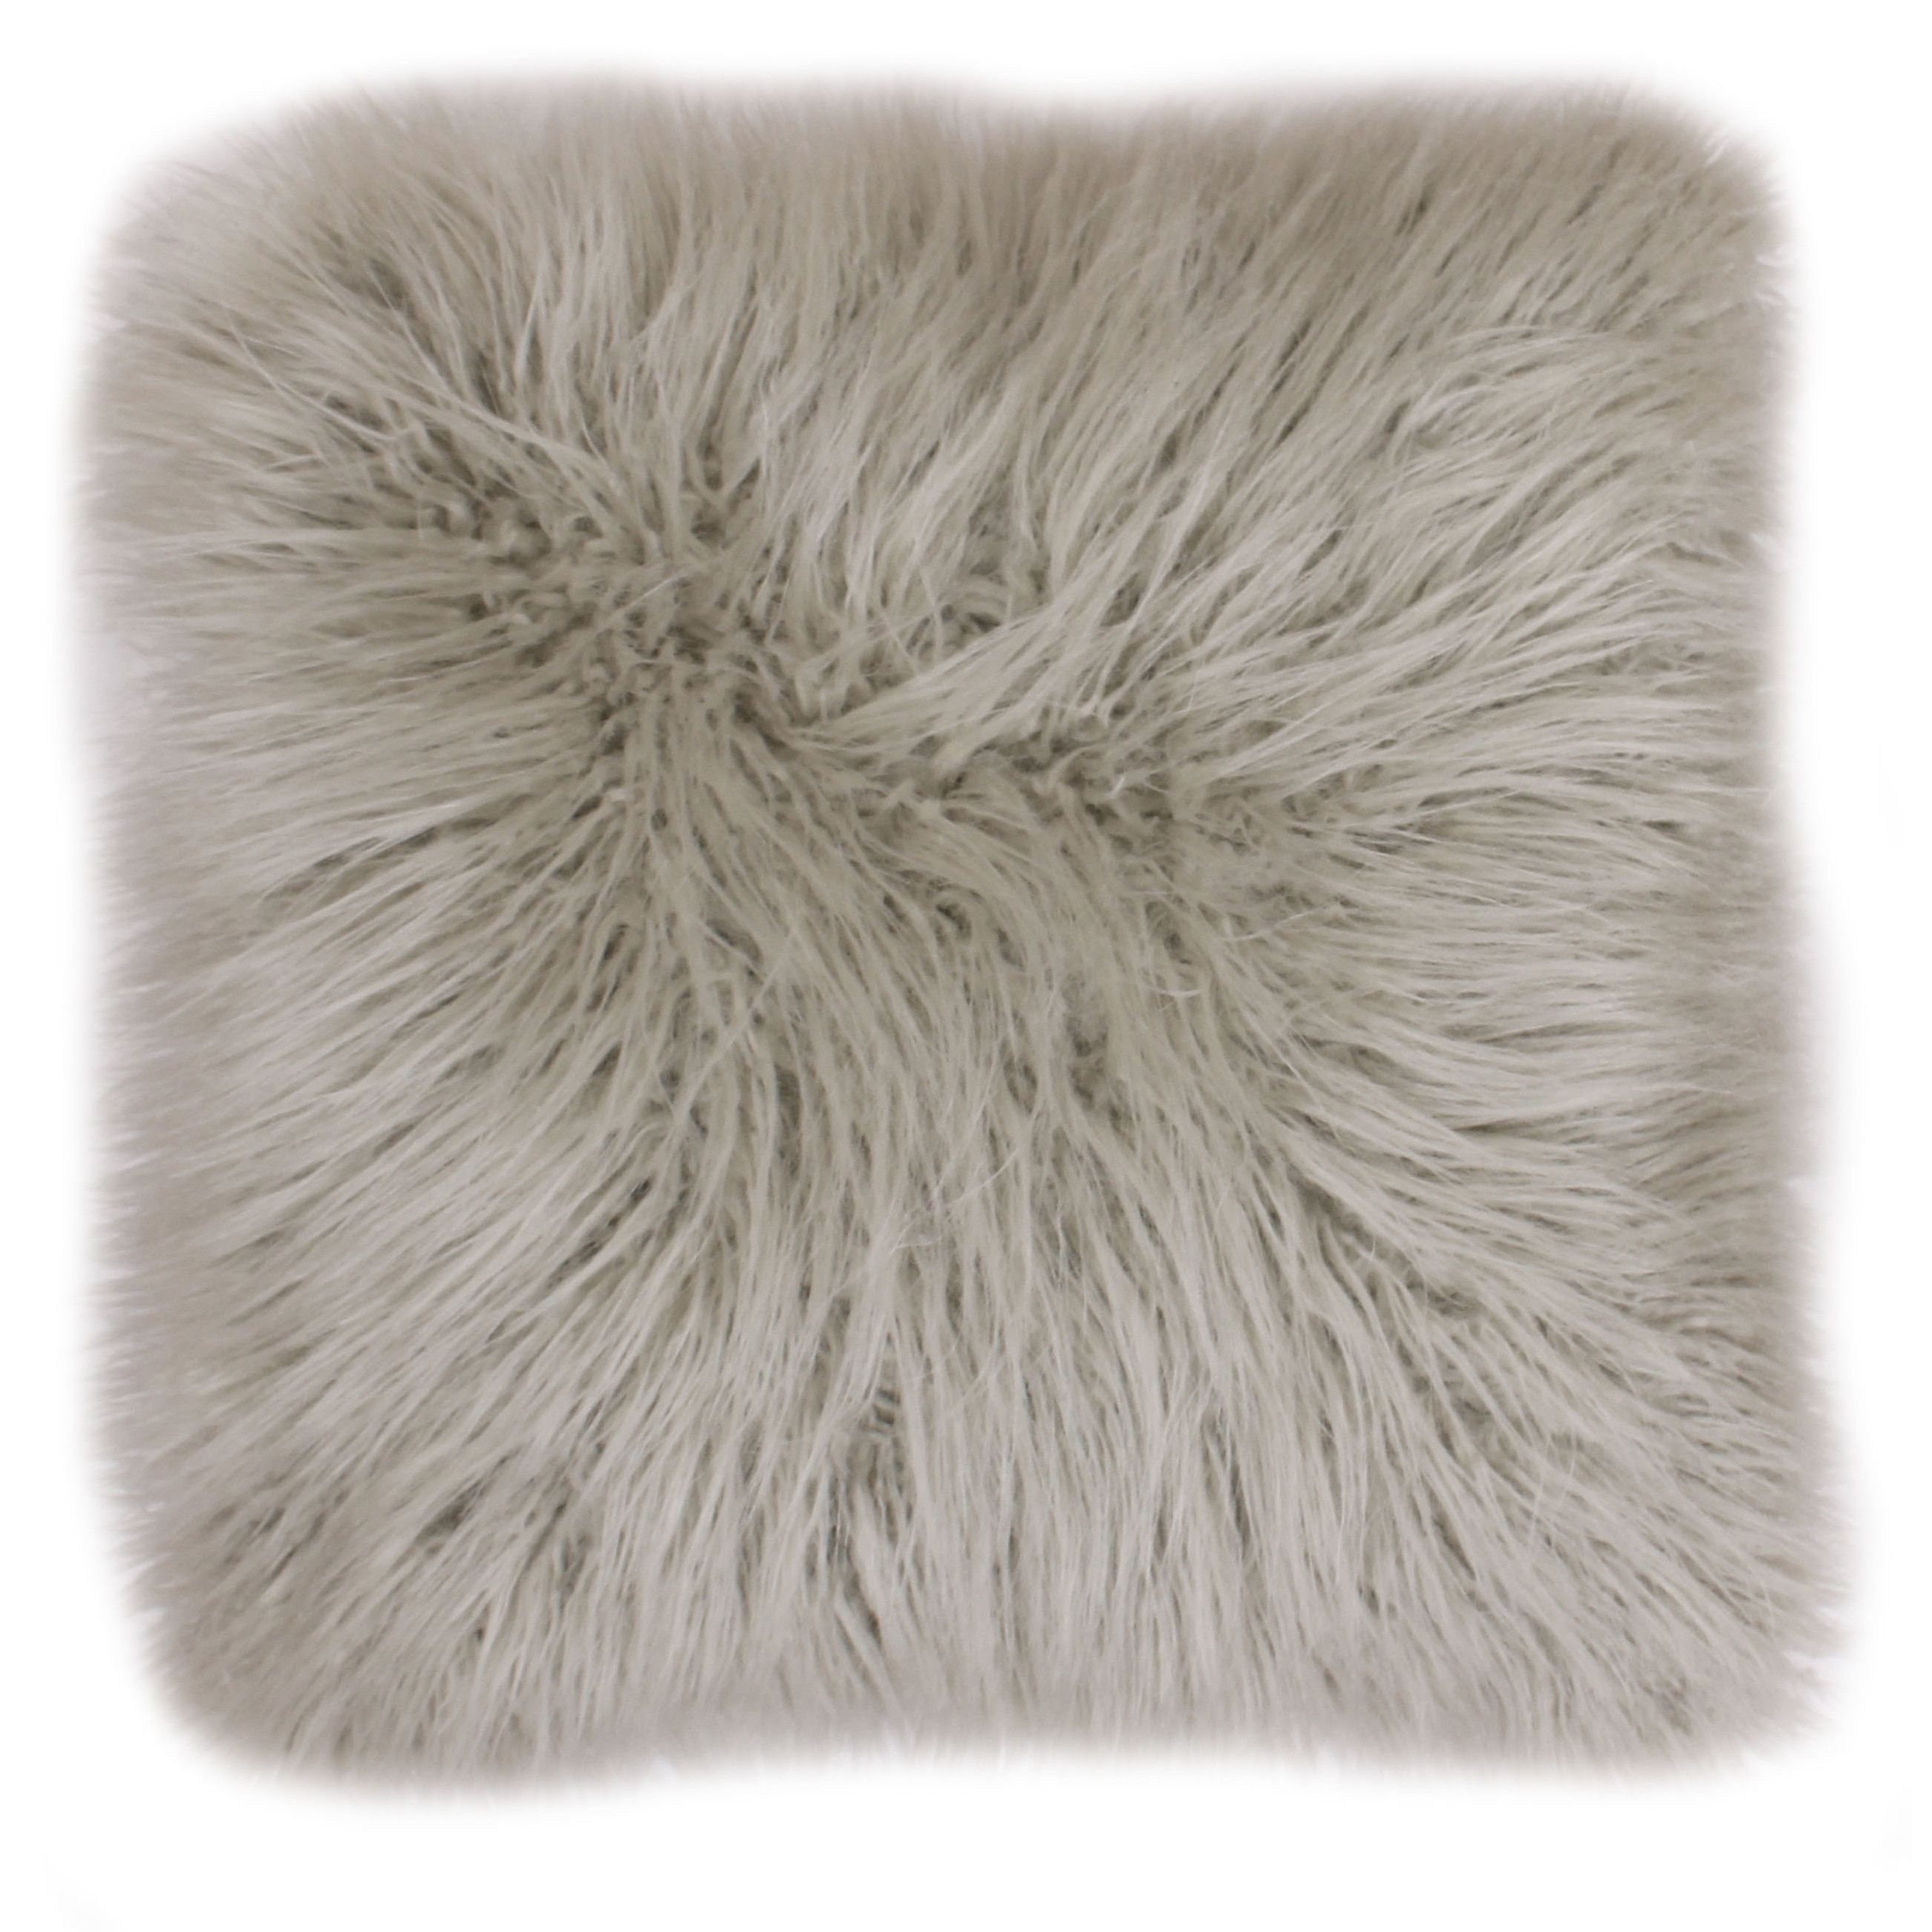 cozy beige faux deals fur get line warm at pillow quotations cover find chanasya fluffy shopping on fuzzy guides soft sham super cheap throw